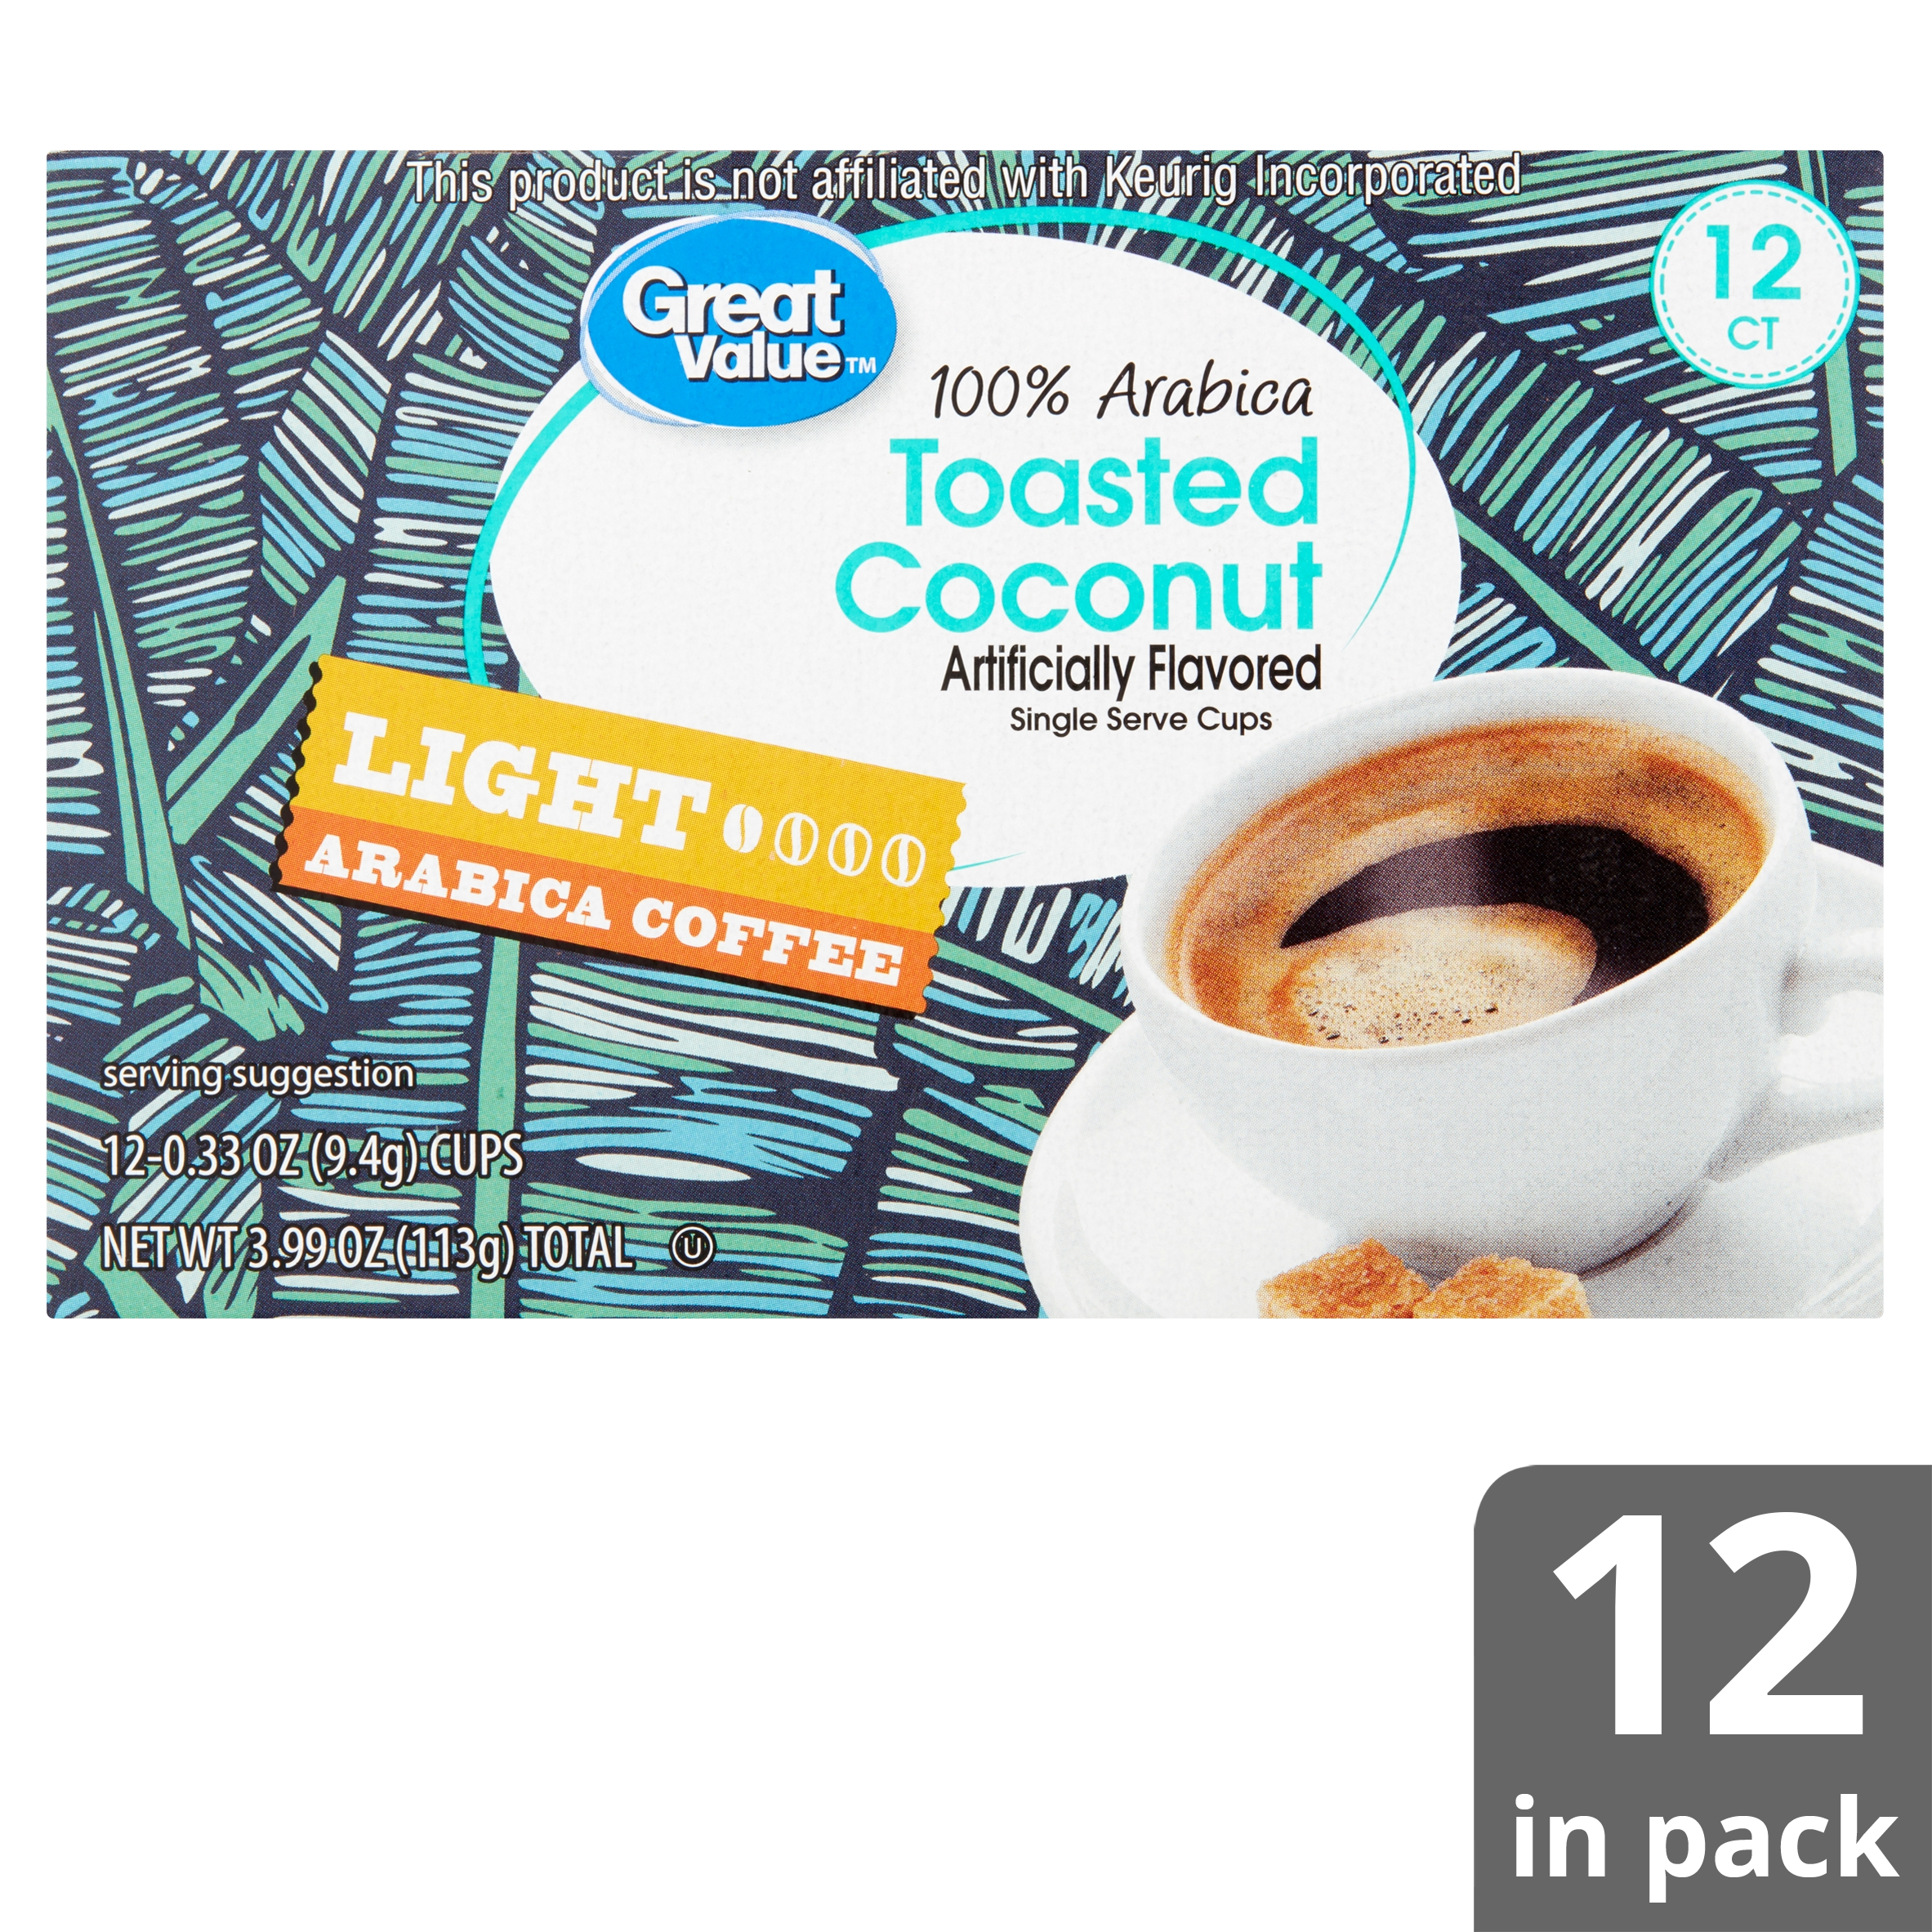 Great Value 100% Arabica Toasted Coconut Light Arabica Coffee, 0.33 ...